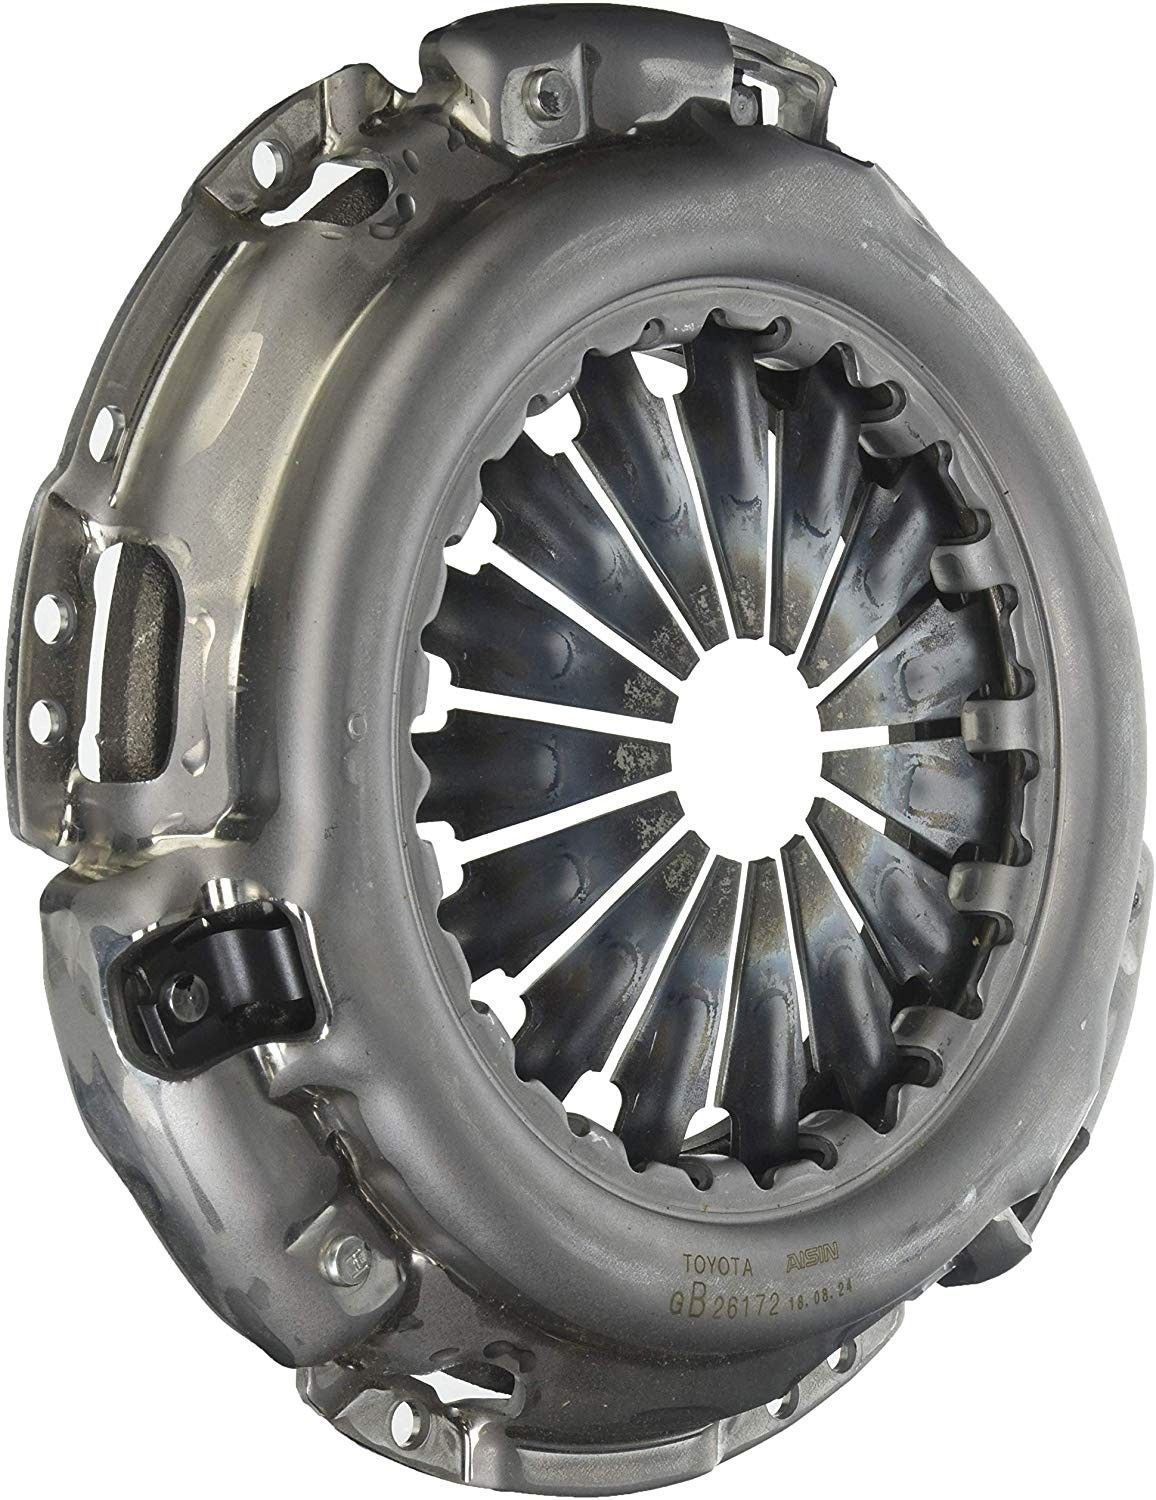 Luk Clutch Pressure Plate For Ashok Leyland Hino 110 & 130 PS Engines Diaphram Type Low Clamp Load 355 - 1350280100